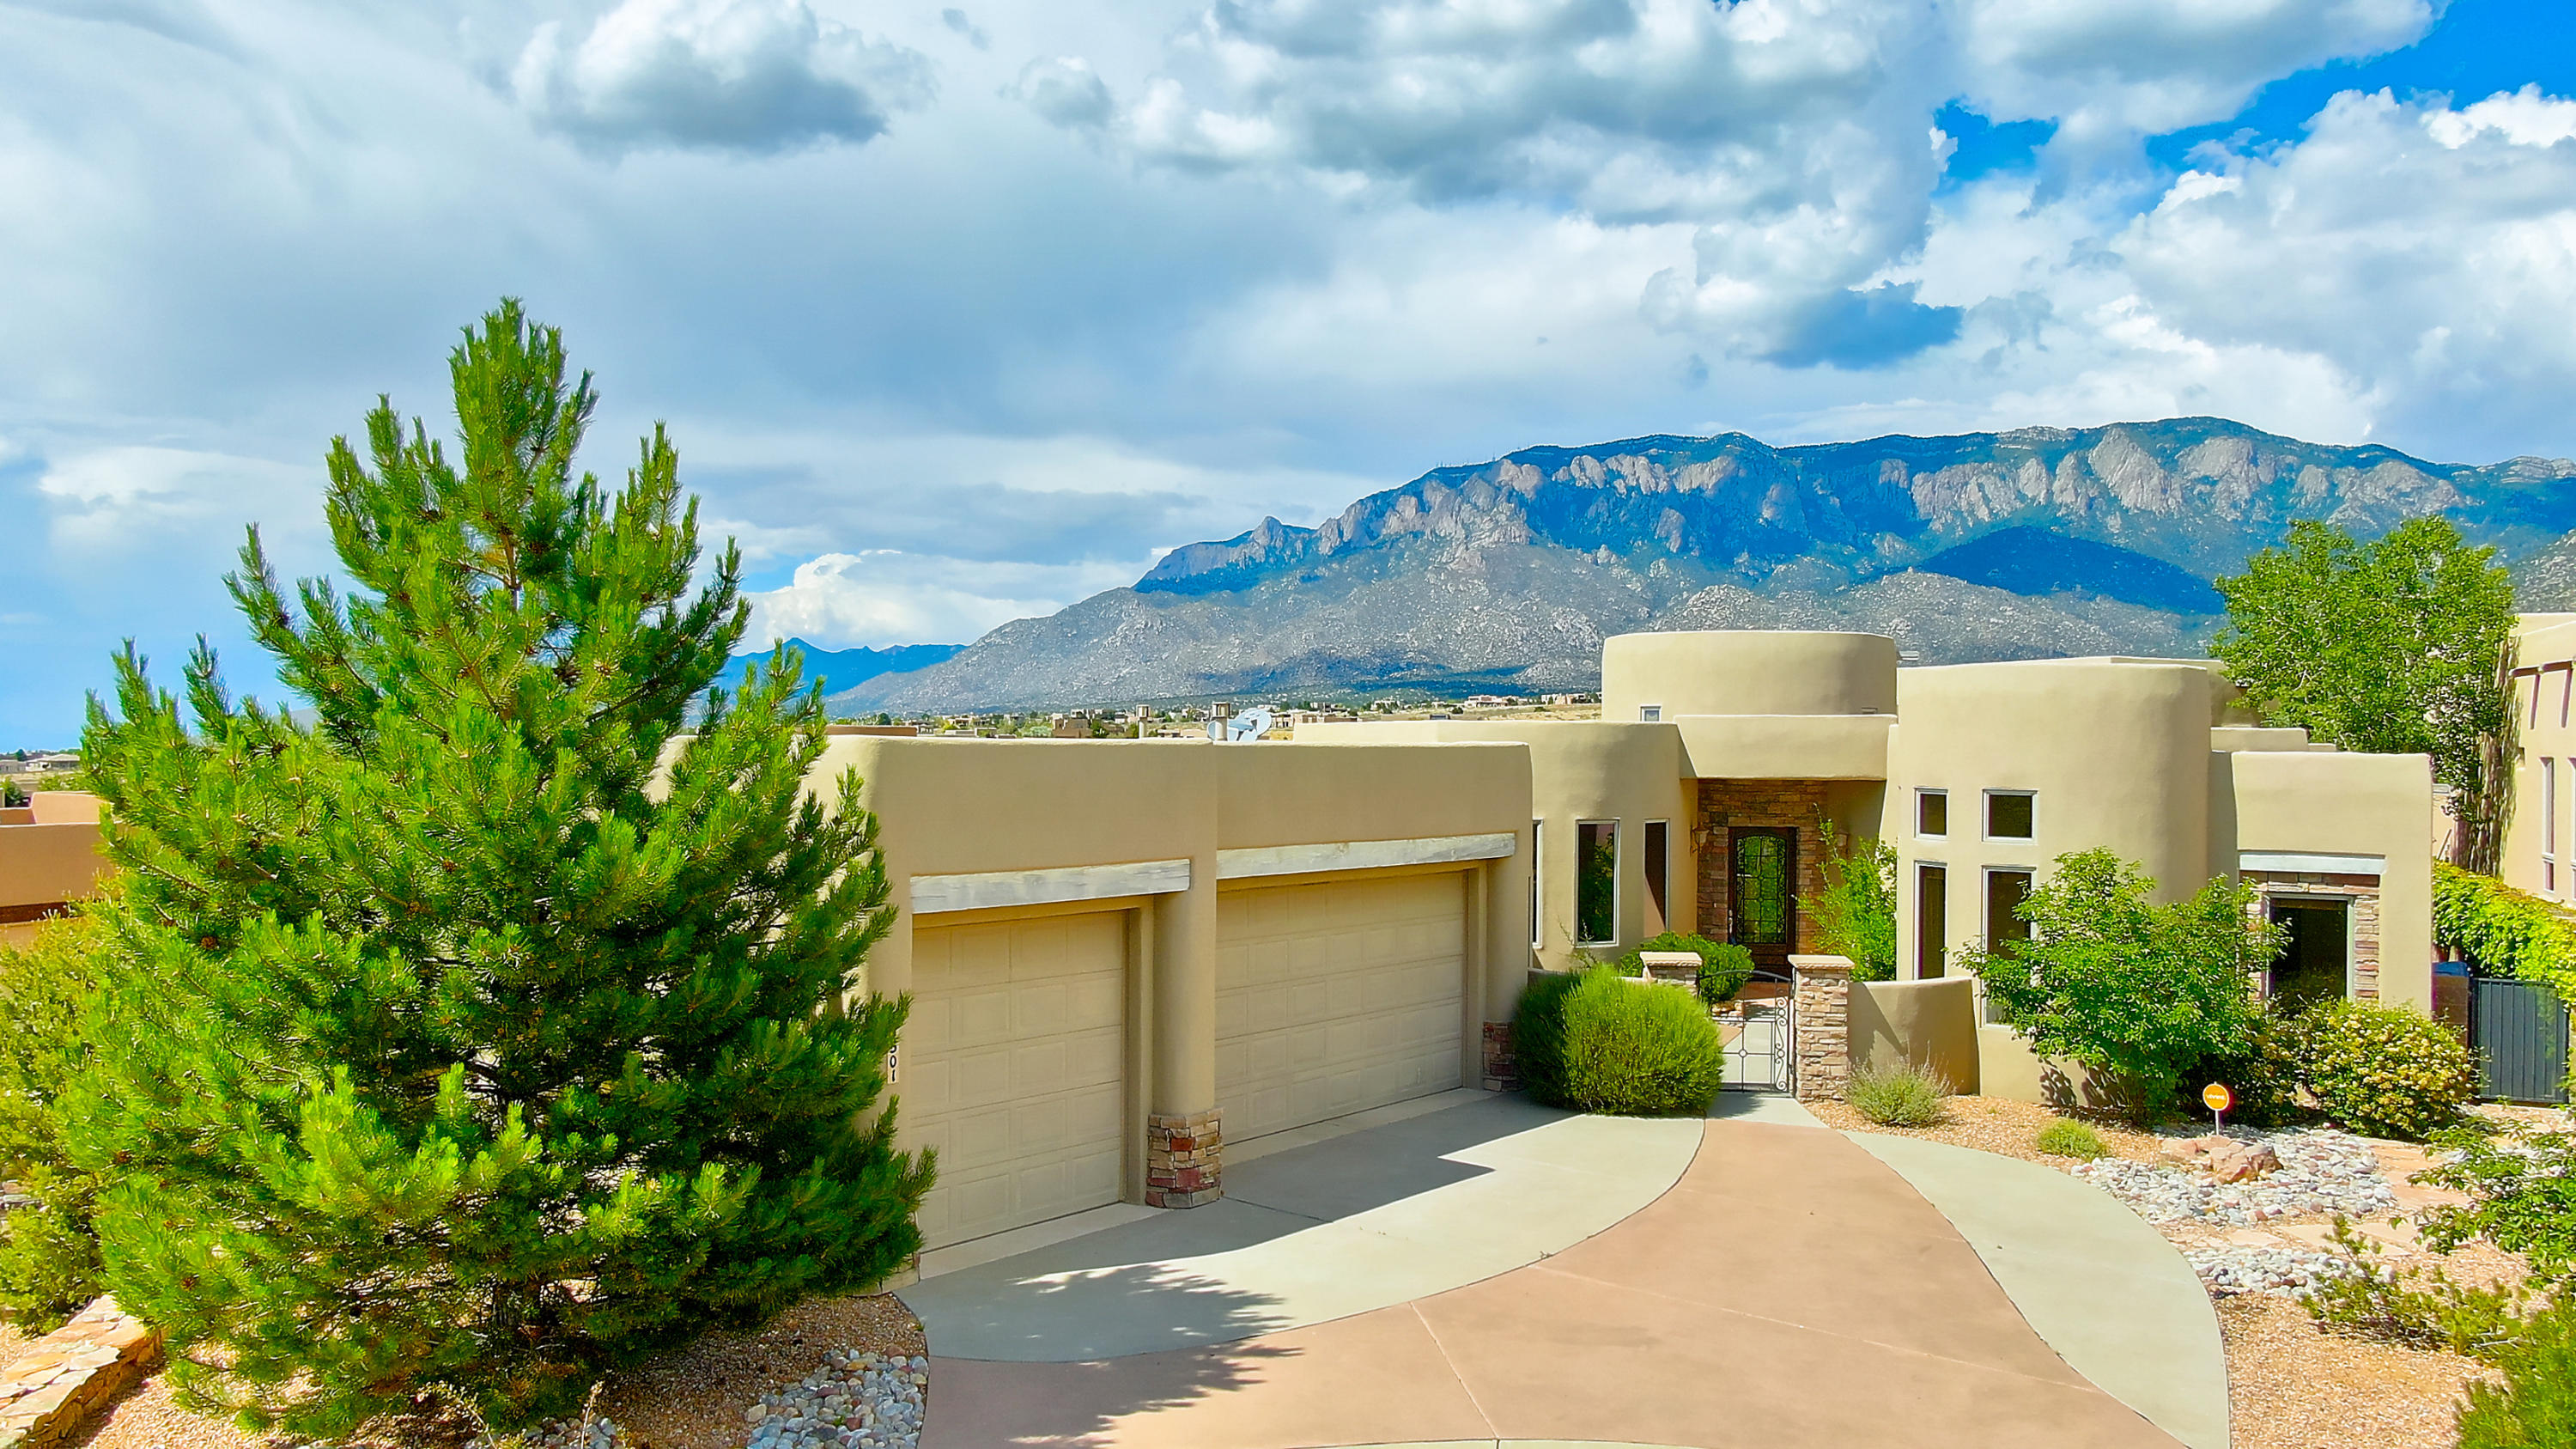 13501 EMBUDITO VIEW Court NE Property Photo - Albuquerque, NM real estate listing